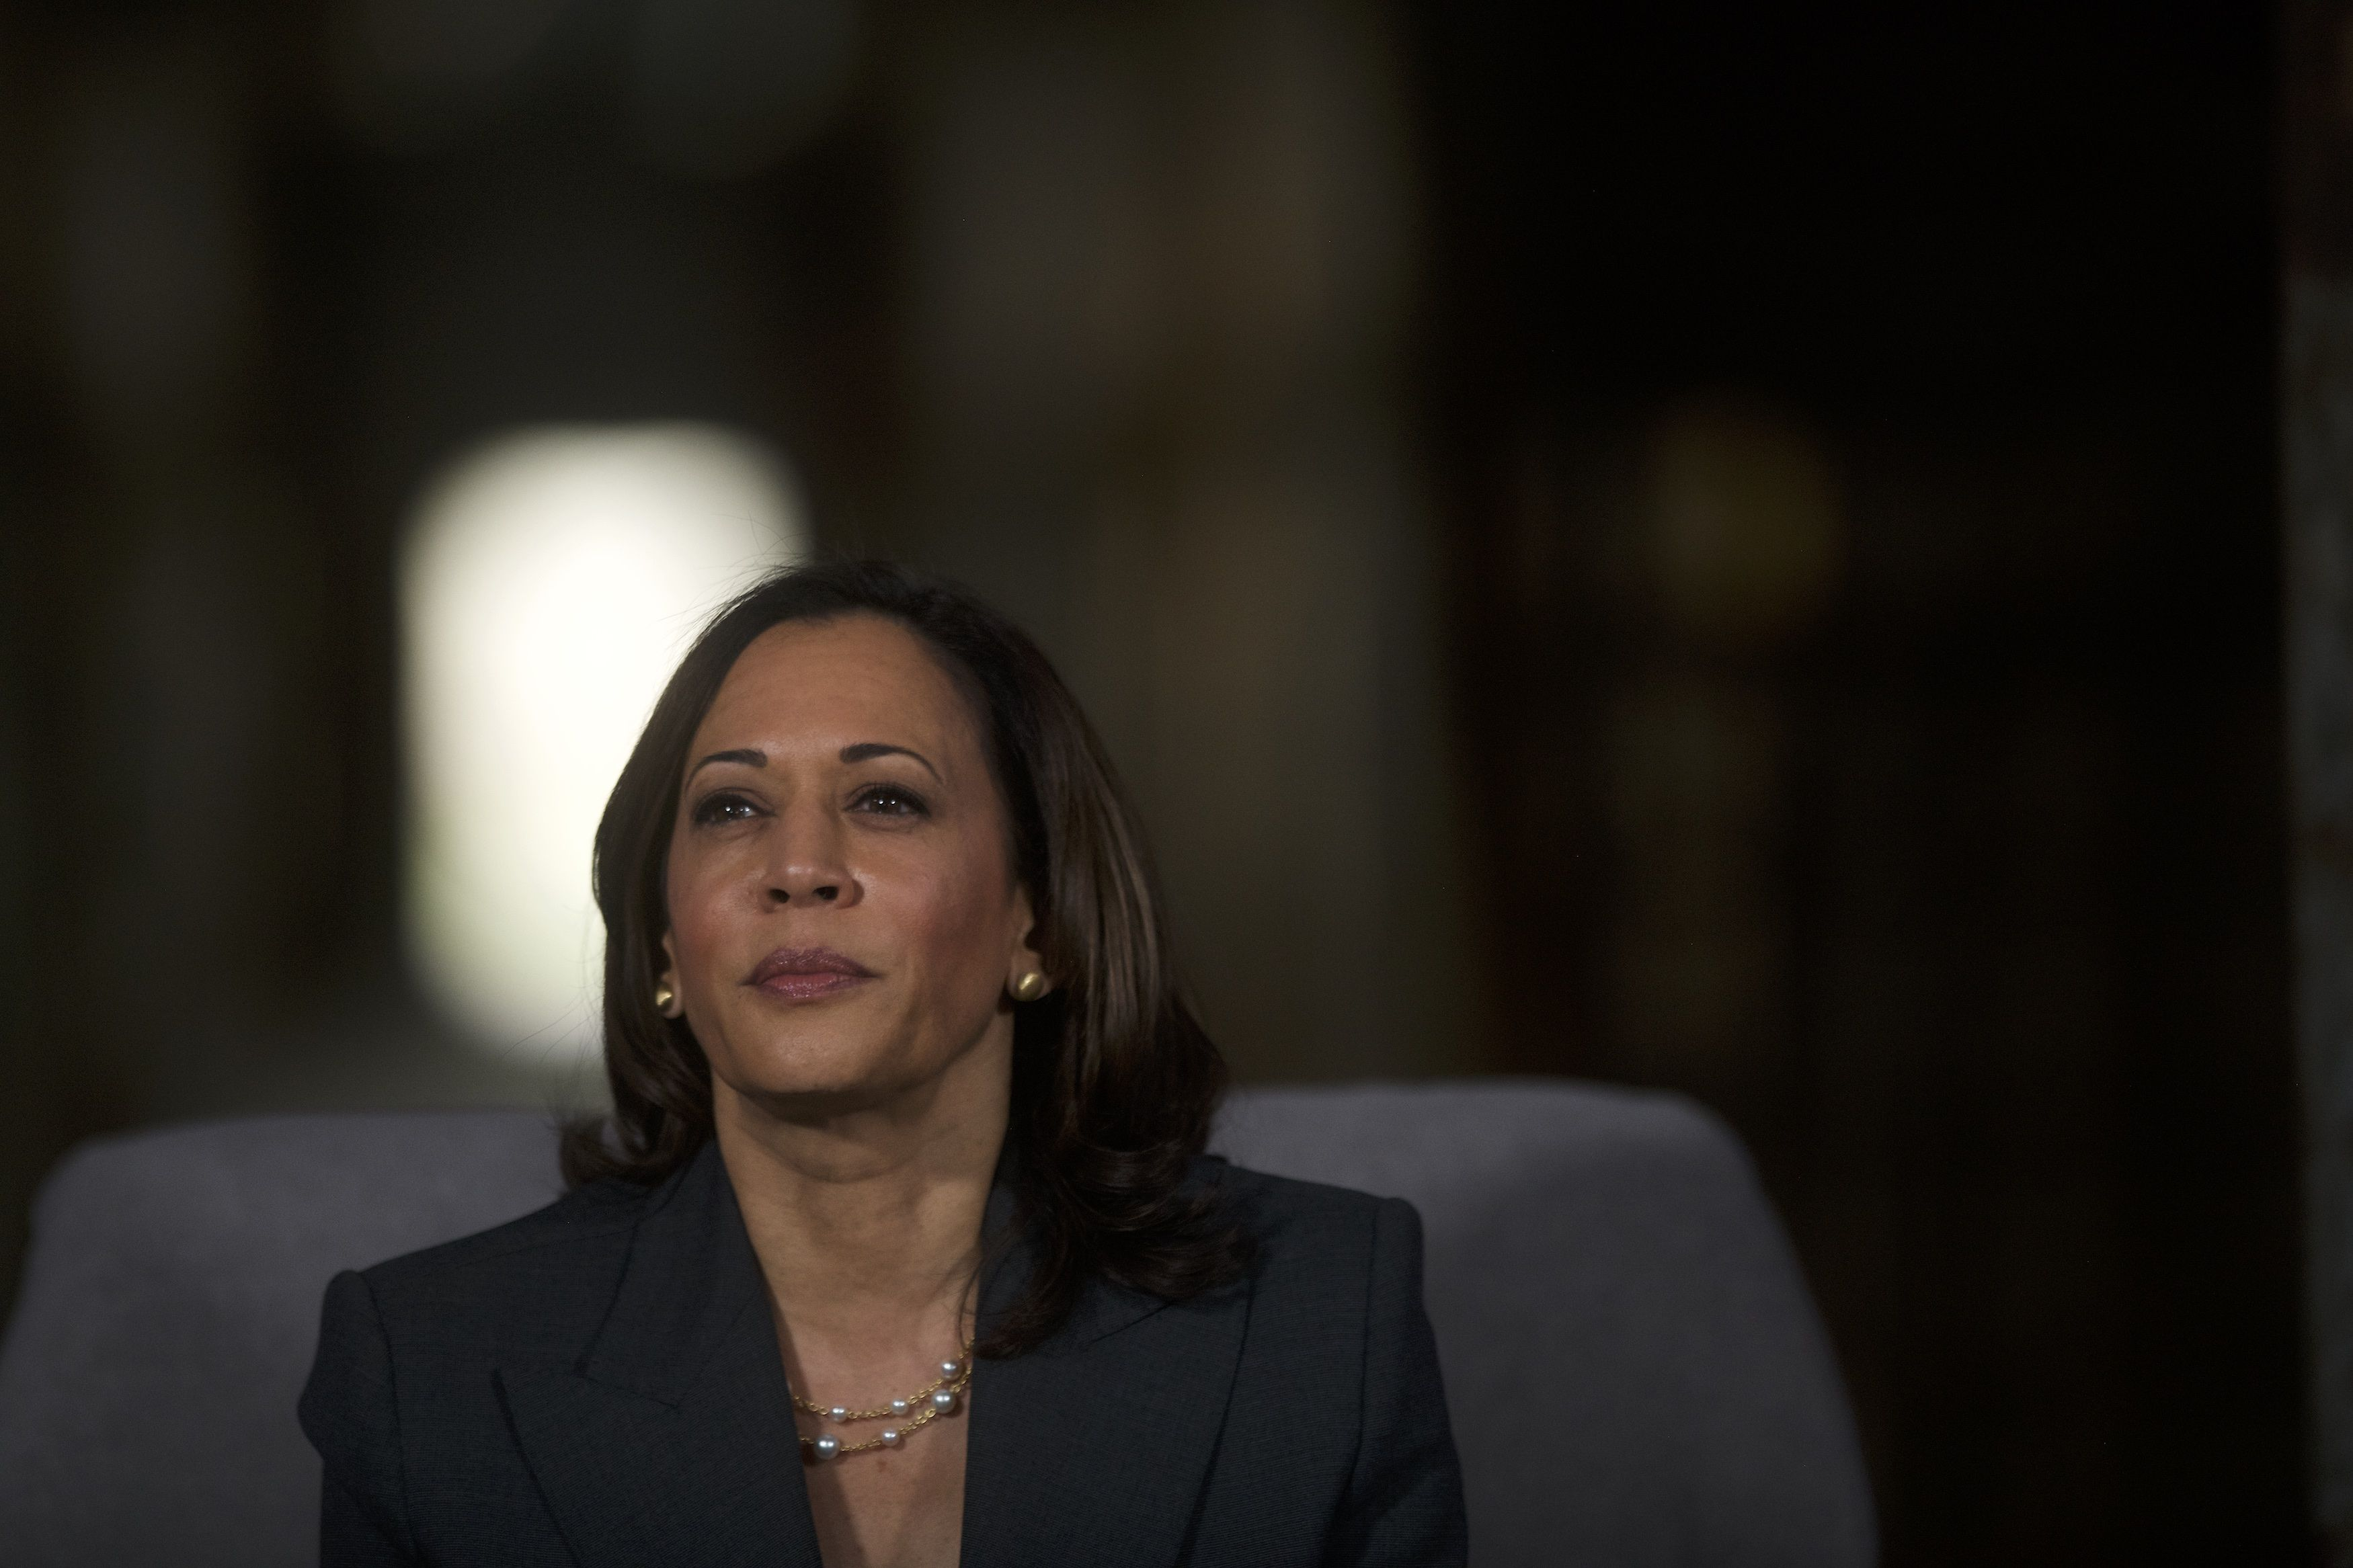 Kamala Harris drops out of 2020 presidential race - Axios